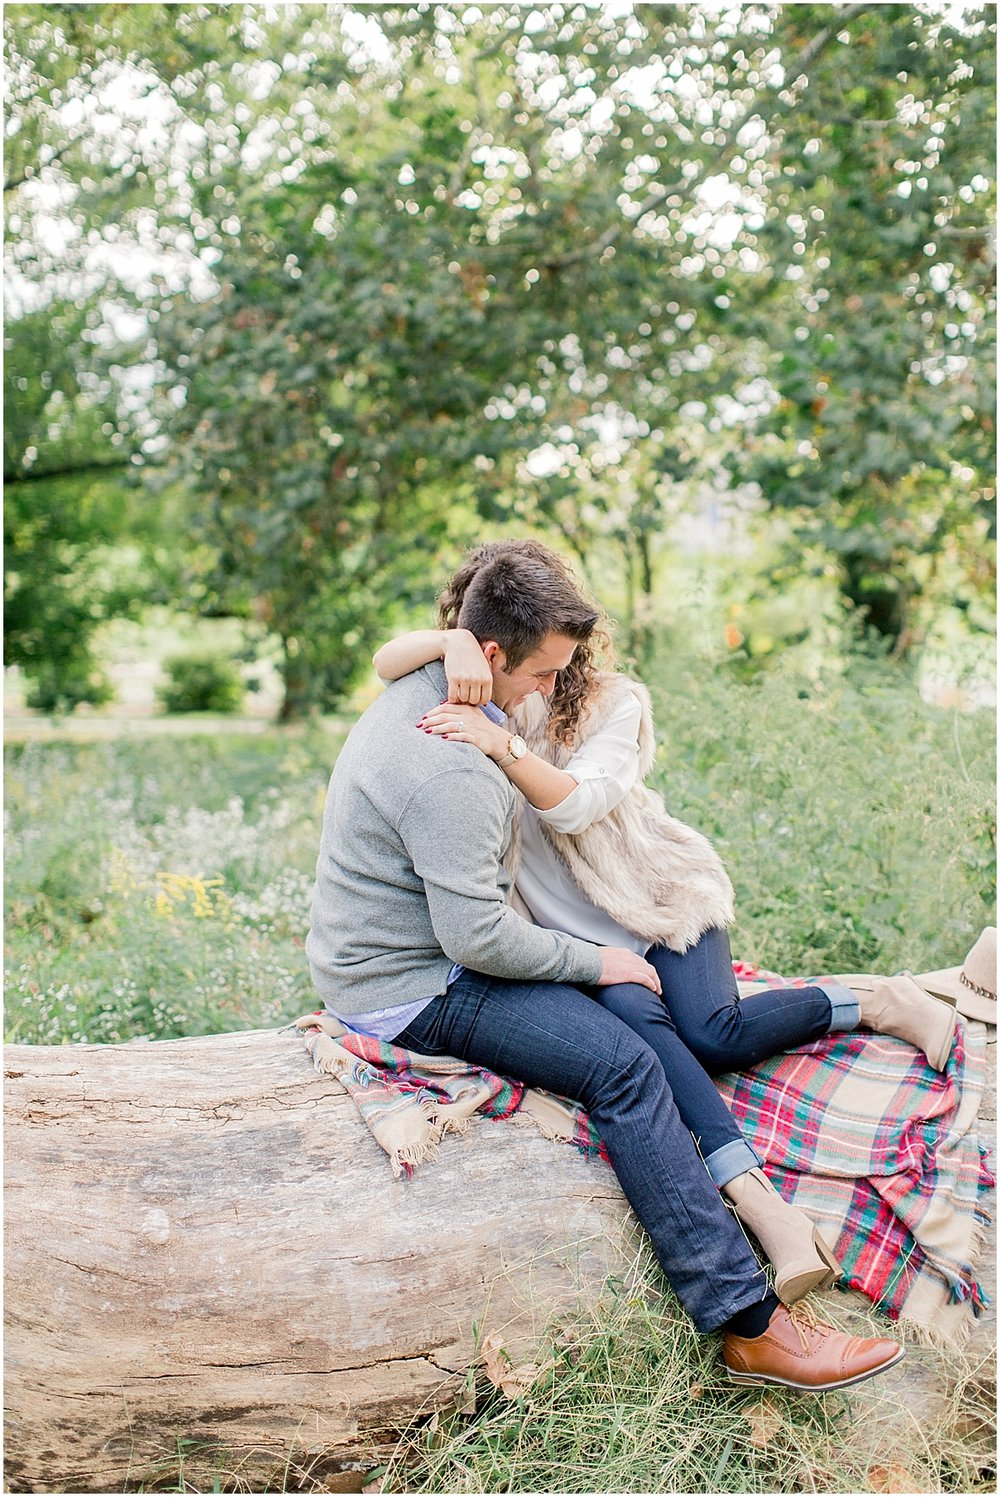 Fall Anniversary Session Inspiration